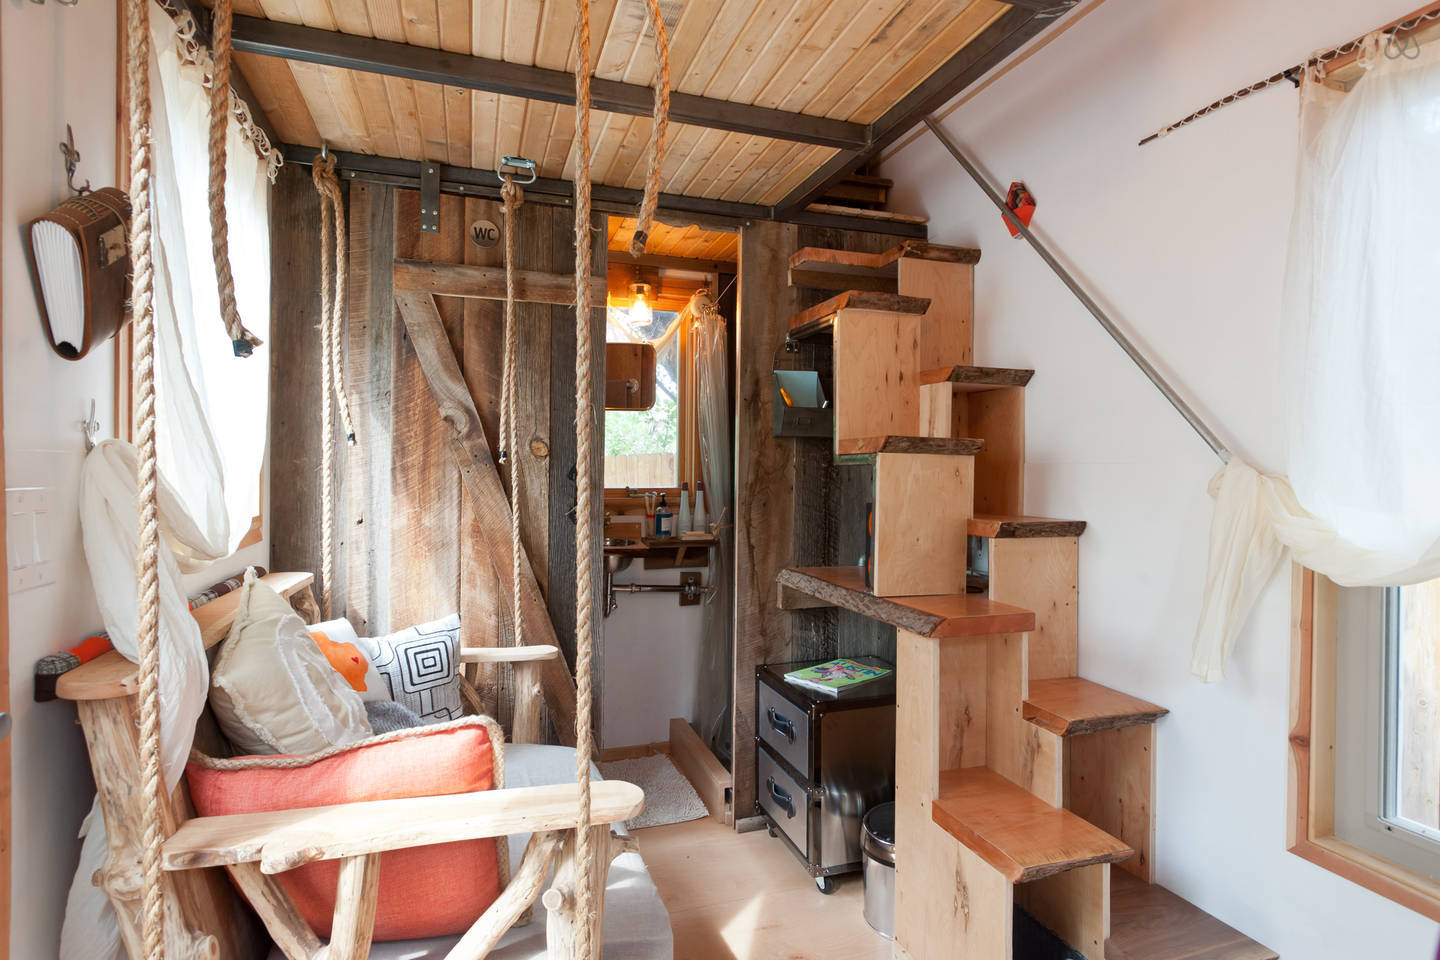 Tiny Home Interior Endearing 16 Tiny Houses You Wish You Could Live In